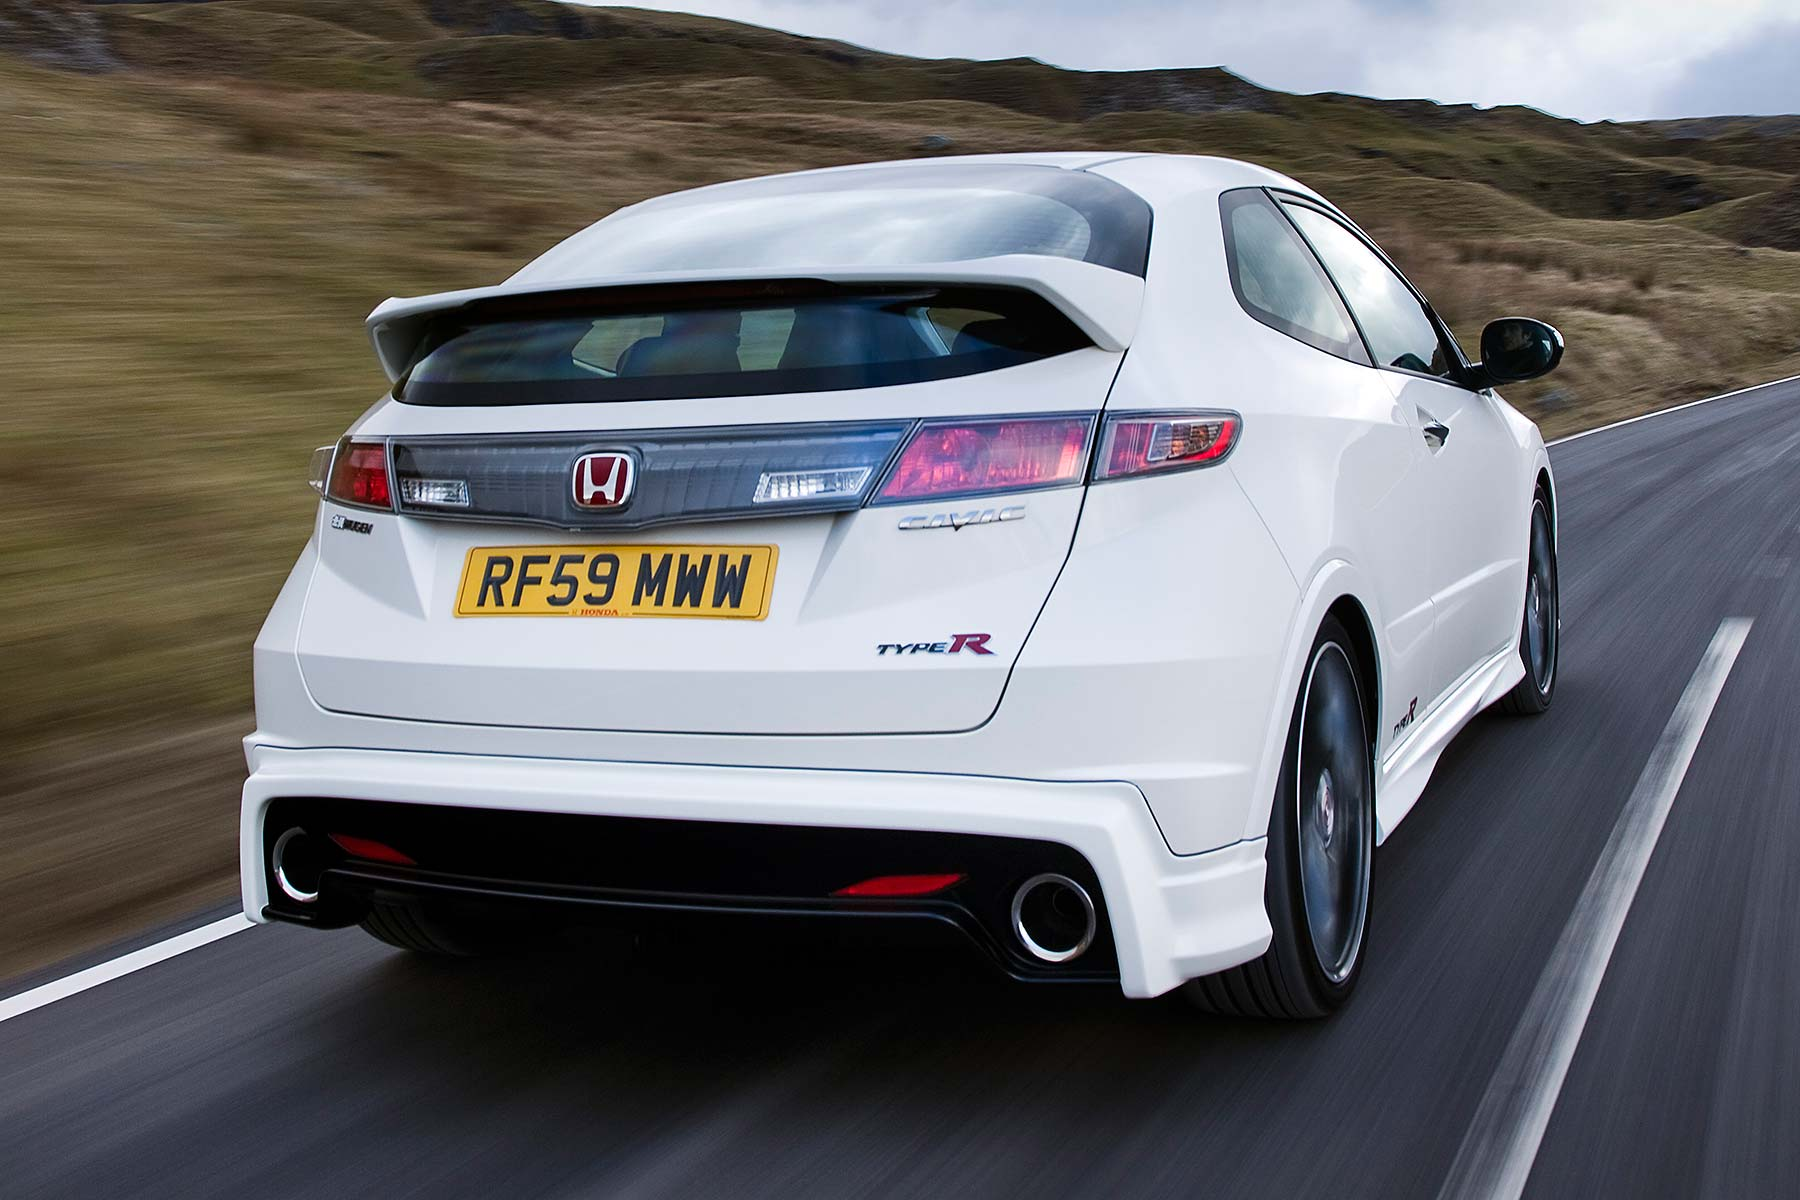 honda civic type r is this summer 39 s hottest used car motoring research. Black Bedroom Furniture Sets. Home Design Ideas